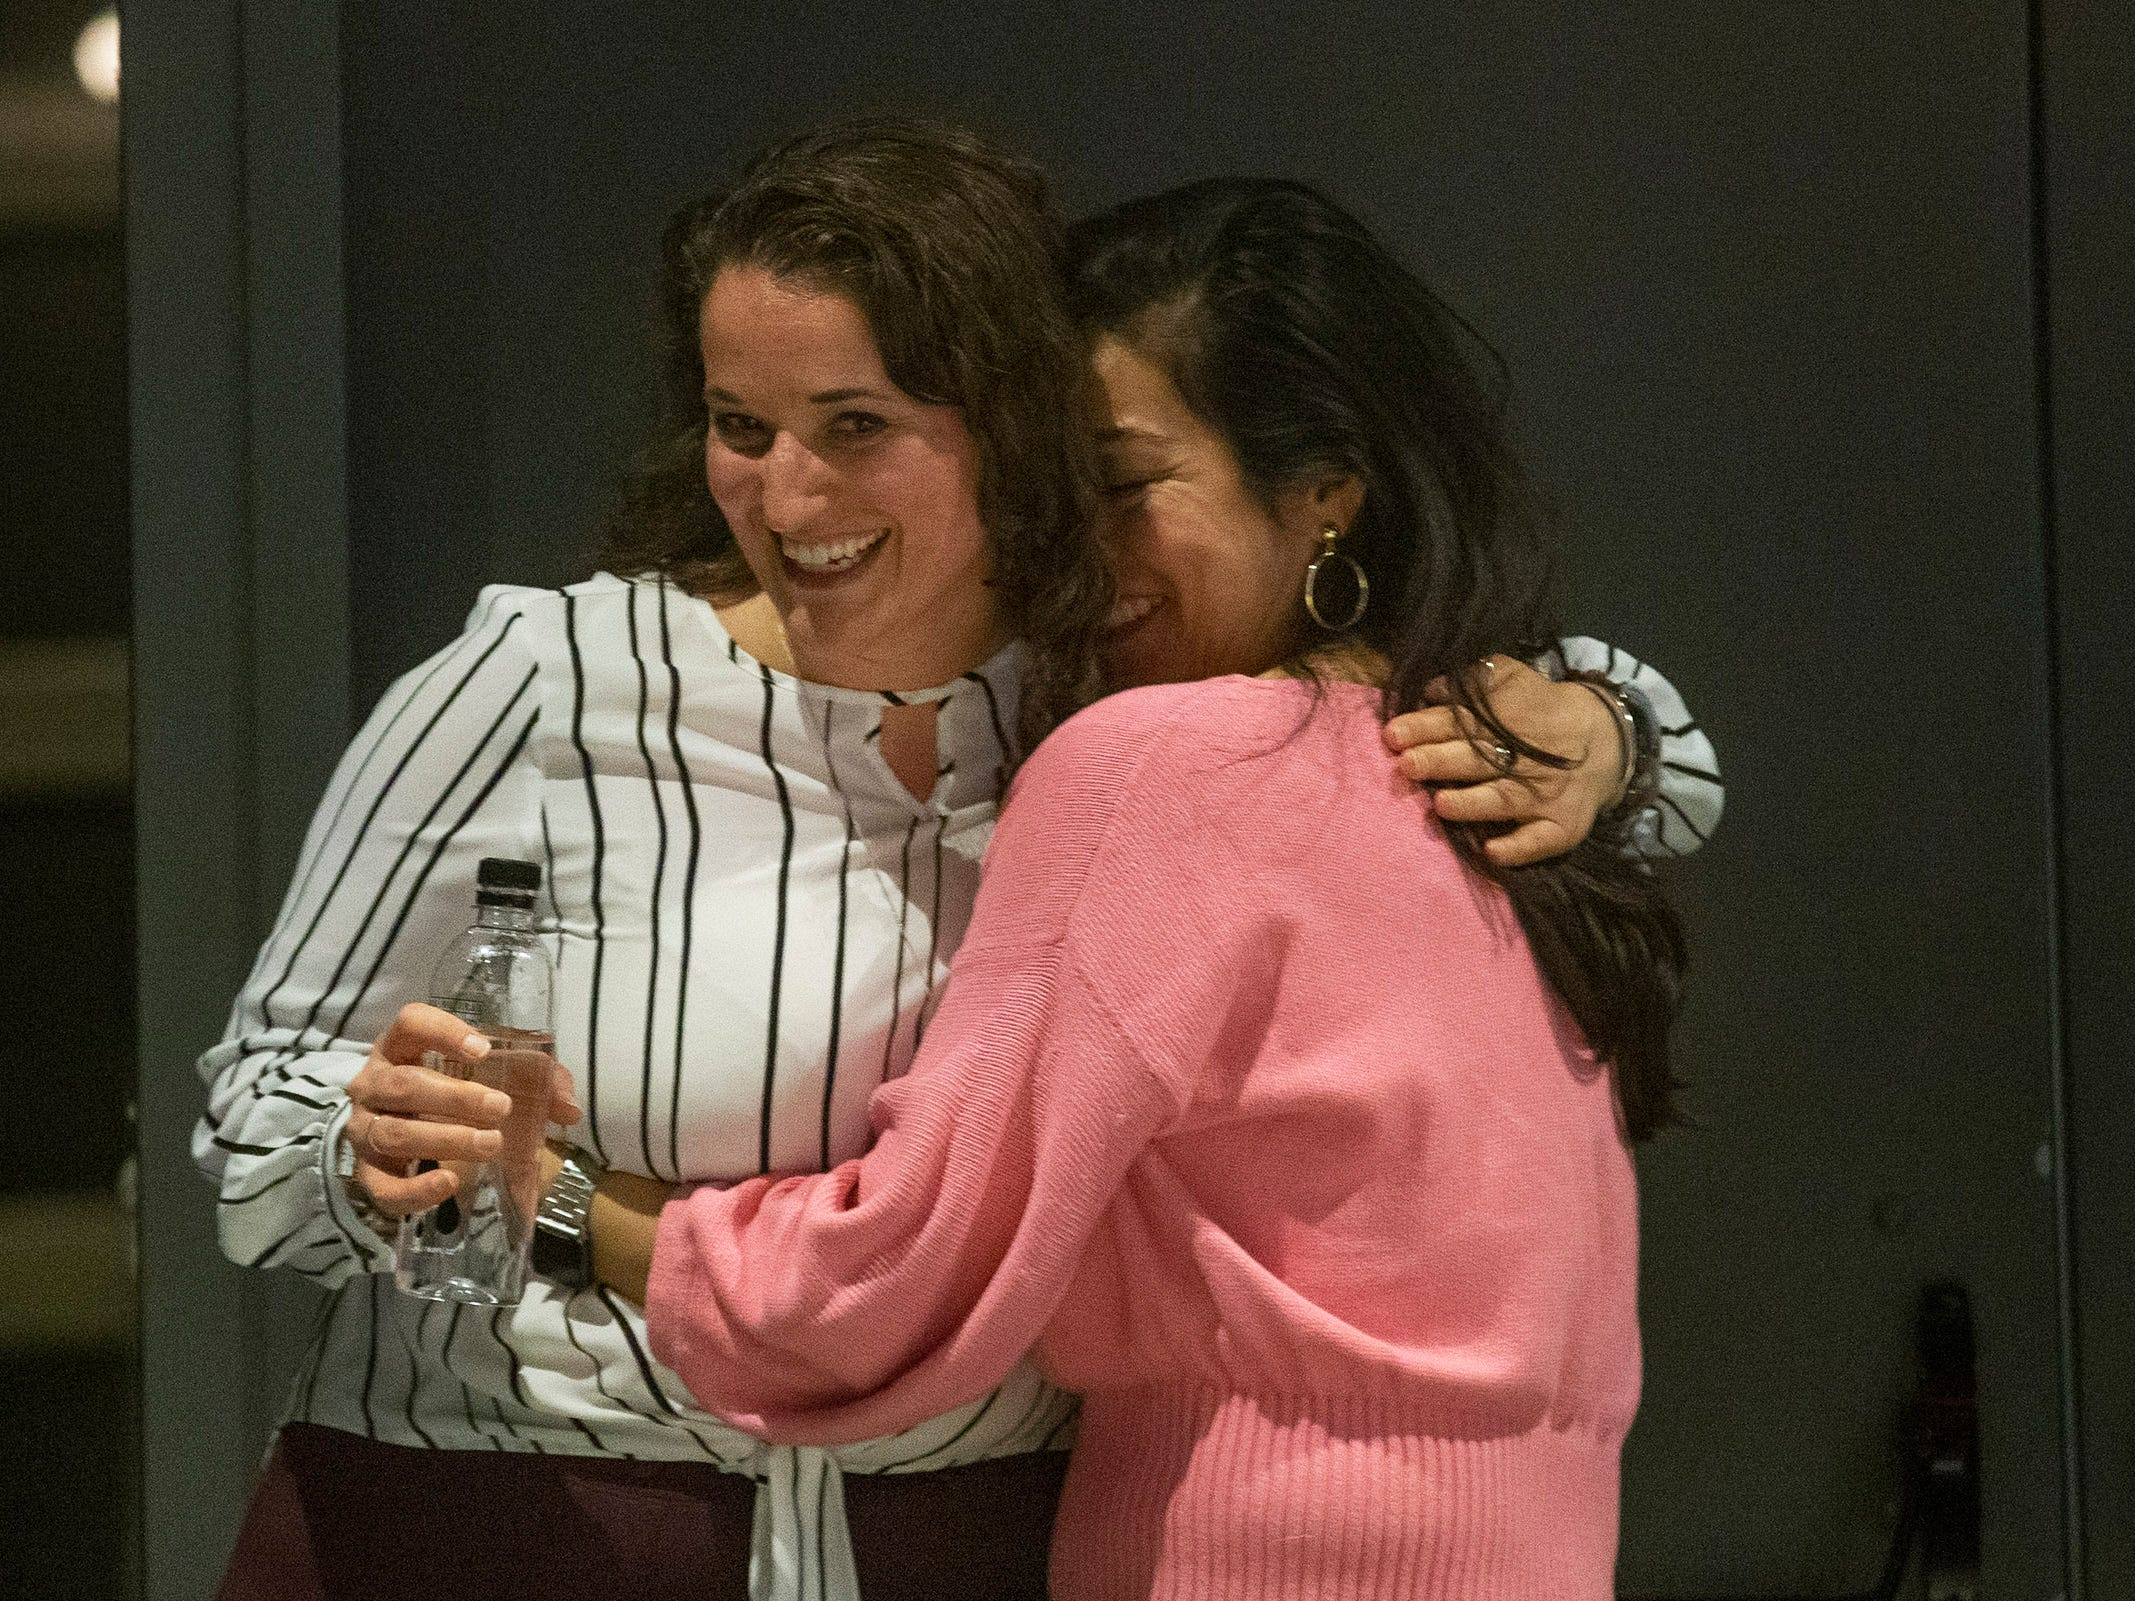 Speakers Susanne Cervenka and Cynthia Salinas share a hug after they both do their stories. Speakers and crowds alike enjoy the latest version of Storytellers in Asbury Park on February 27, 2019, this night's subject was starting over.